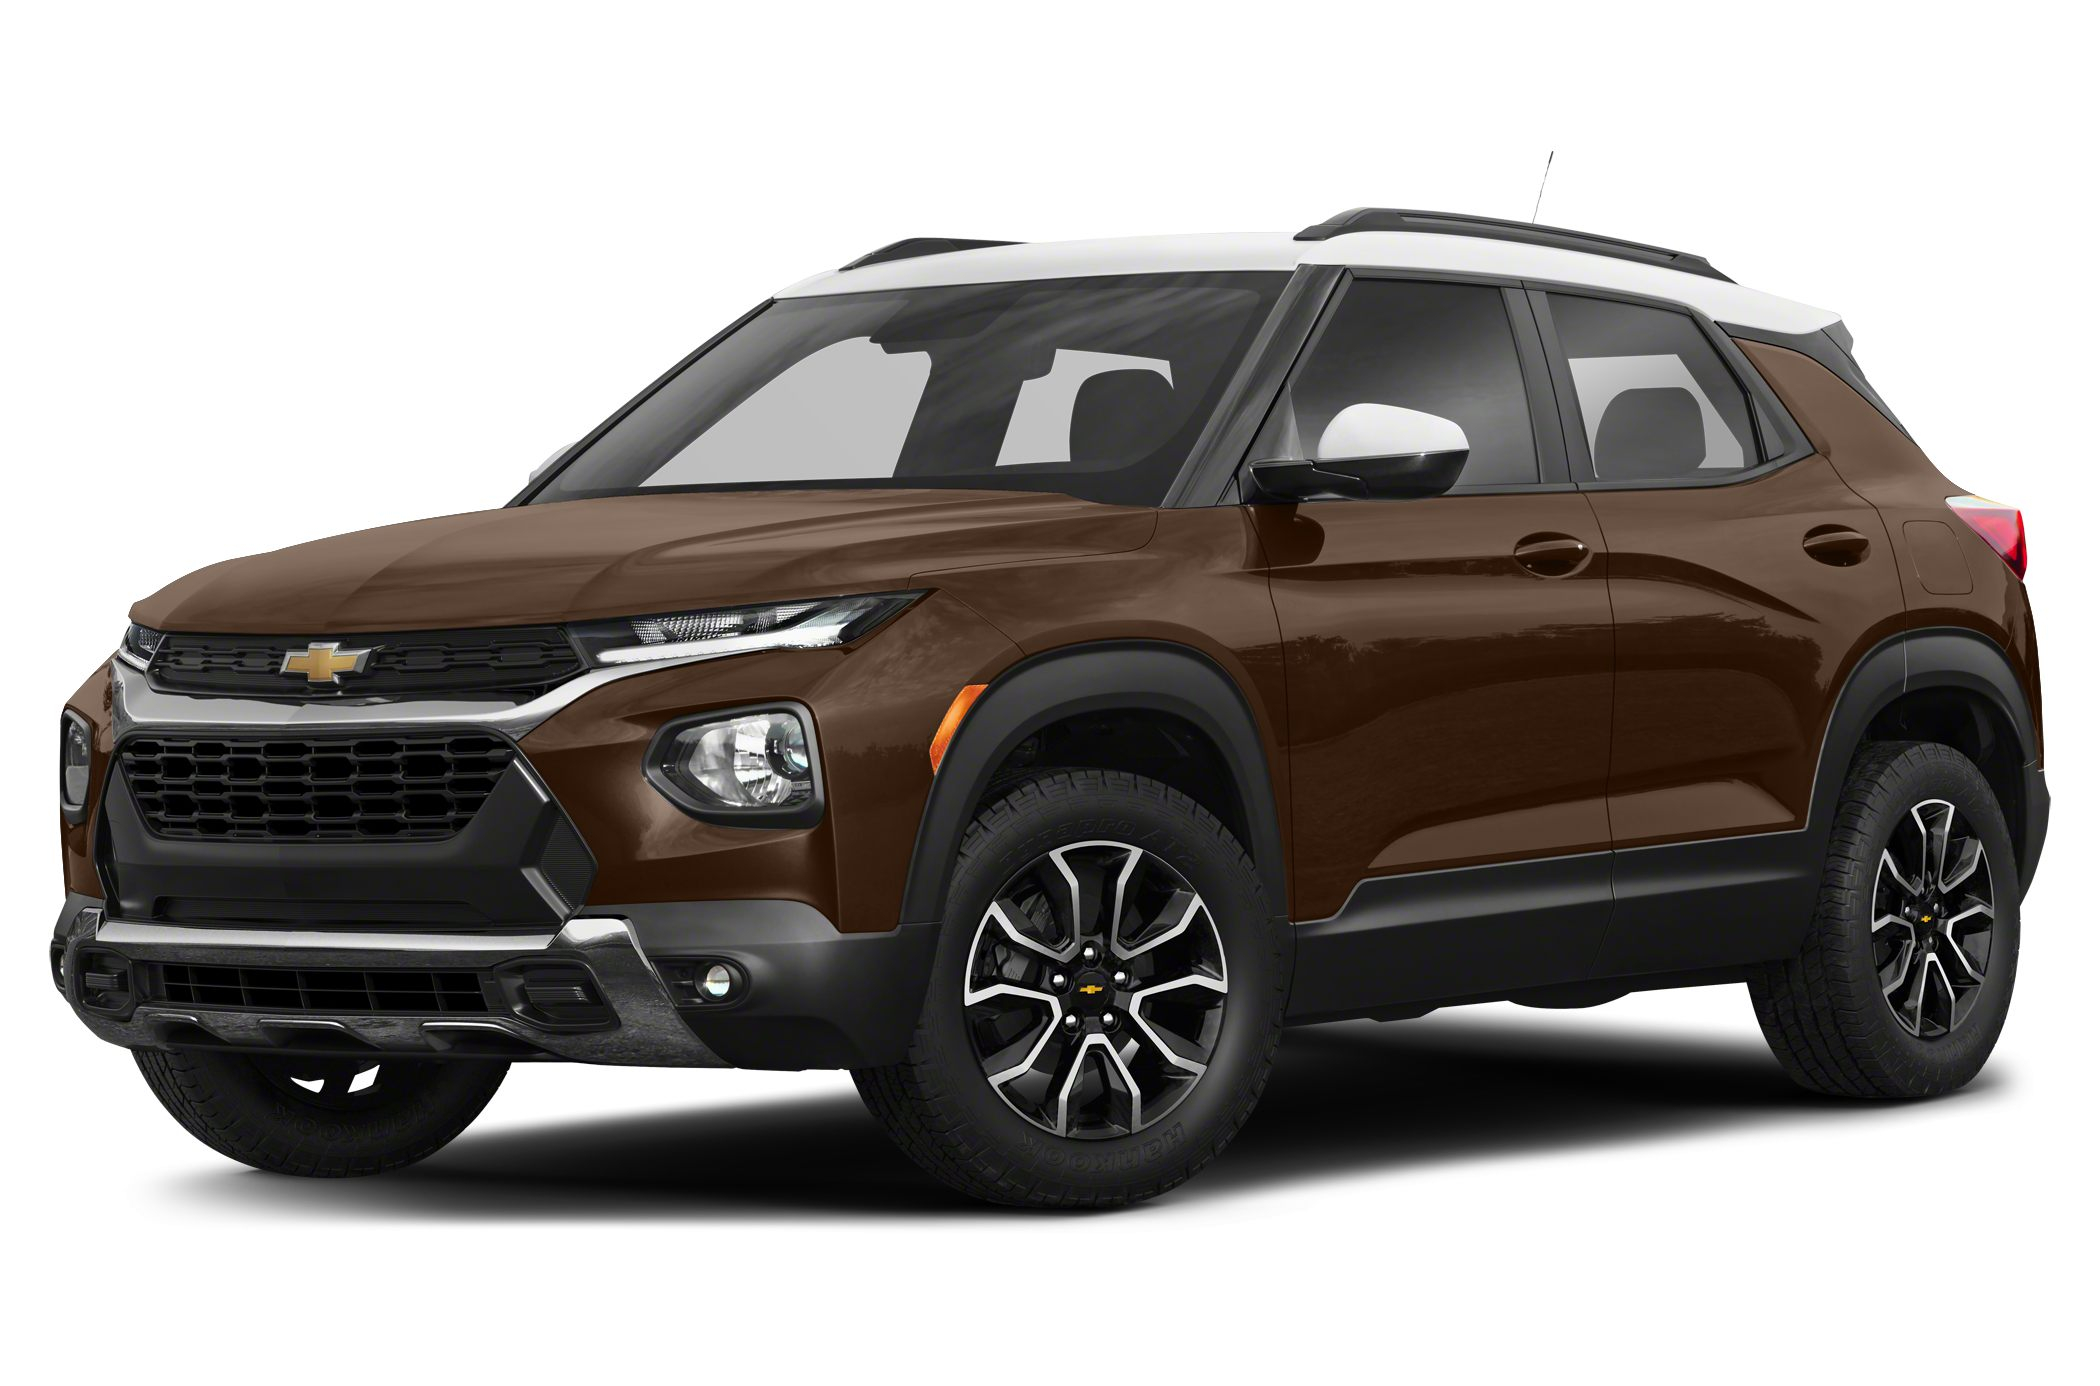 2021 Chevy Blazer Weight, Width, Build Your Own | 2022 Chevy